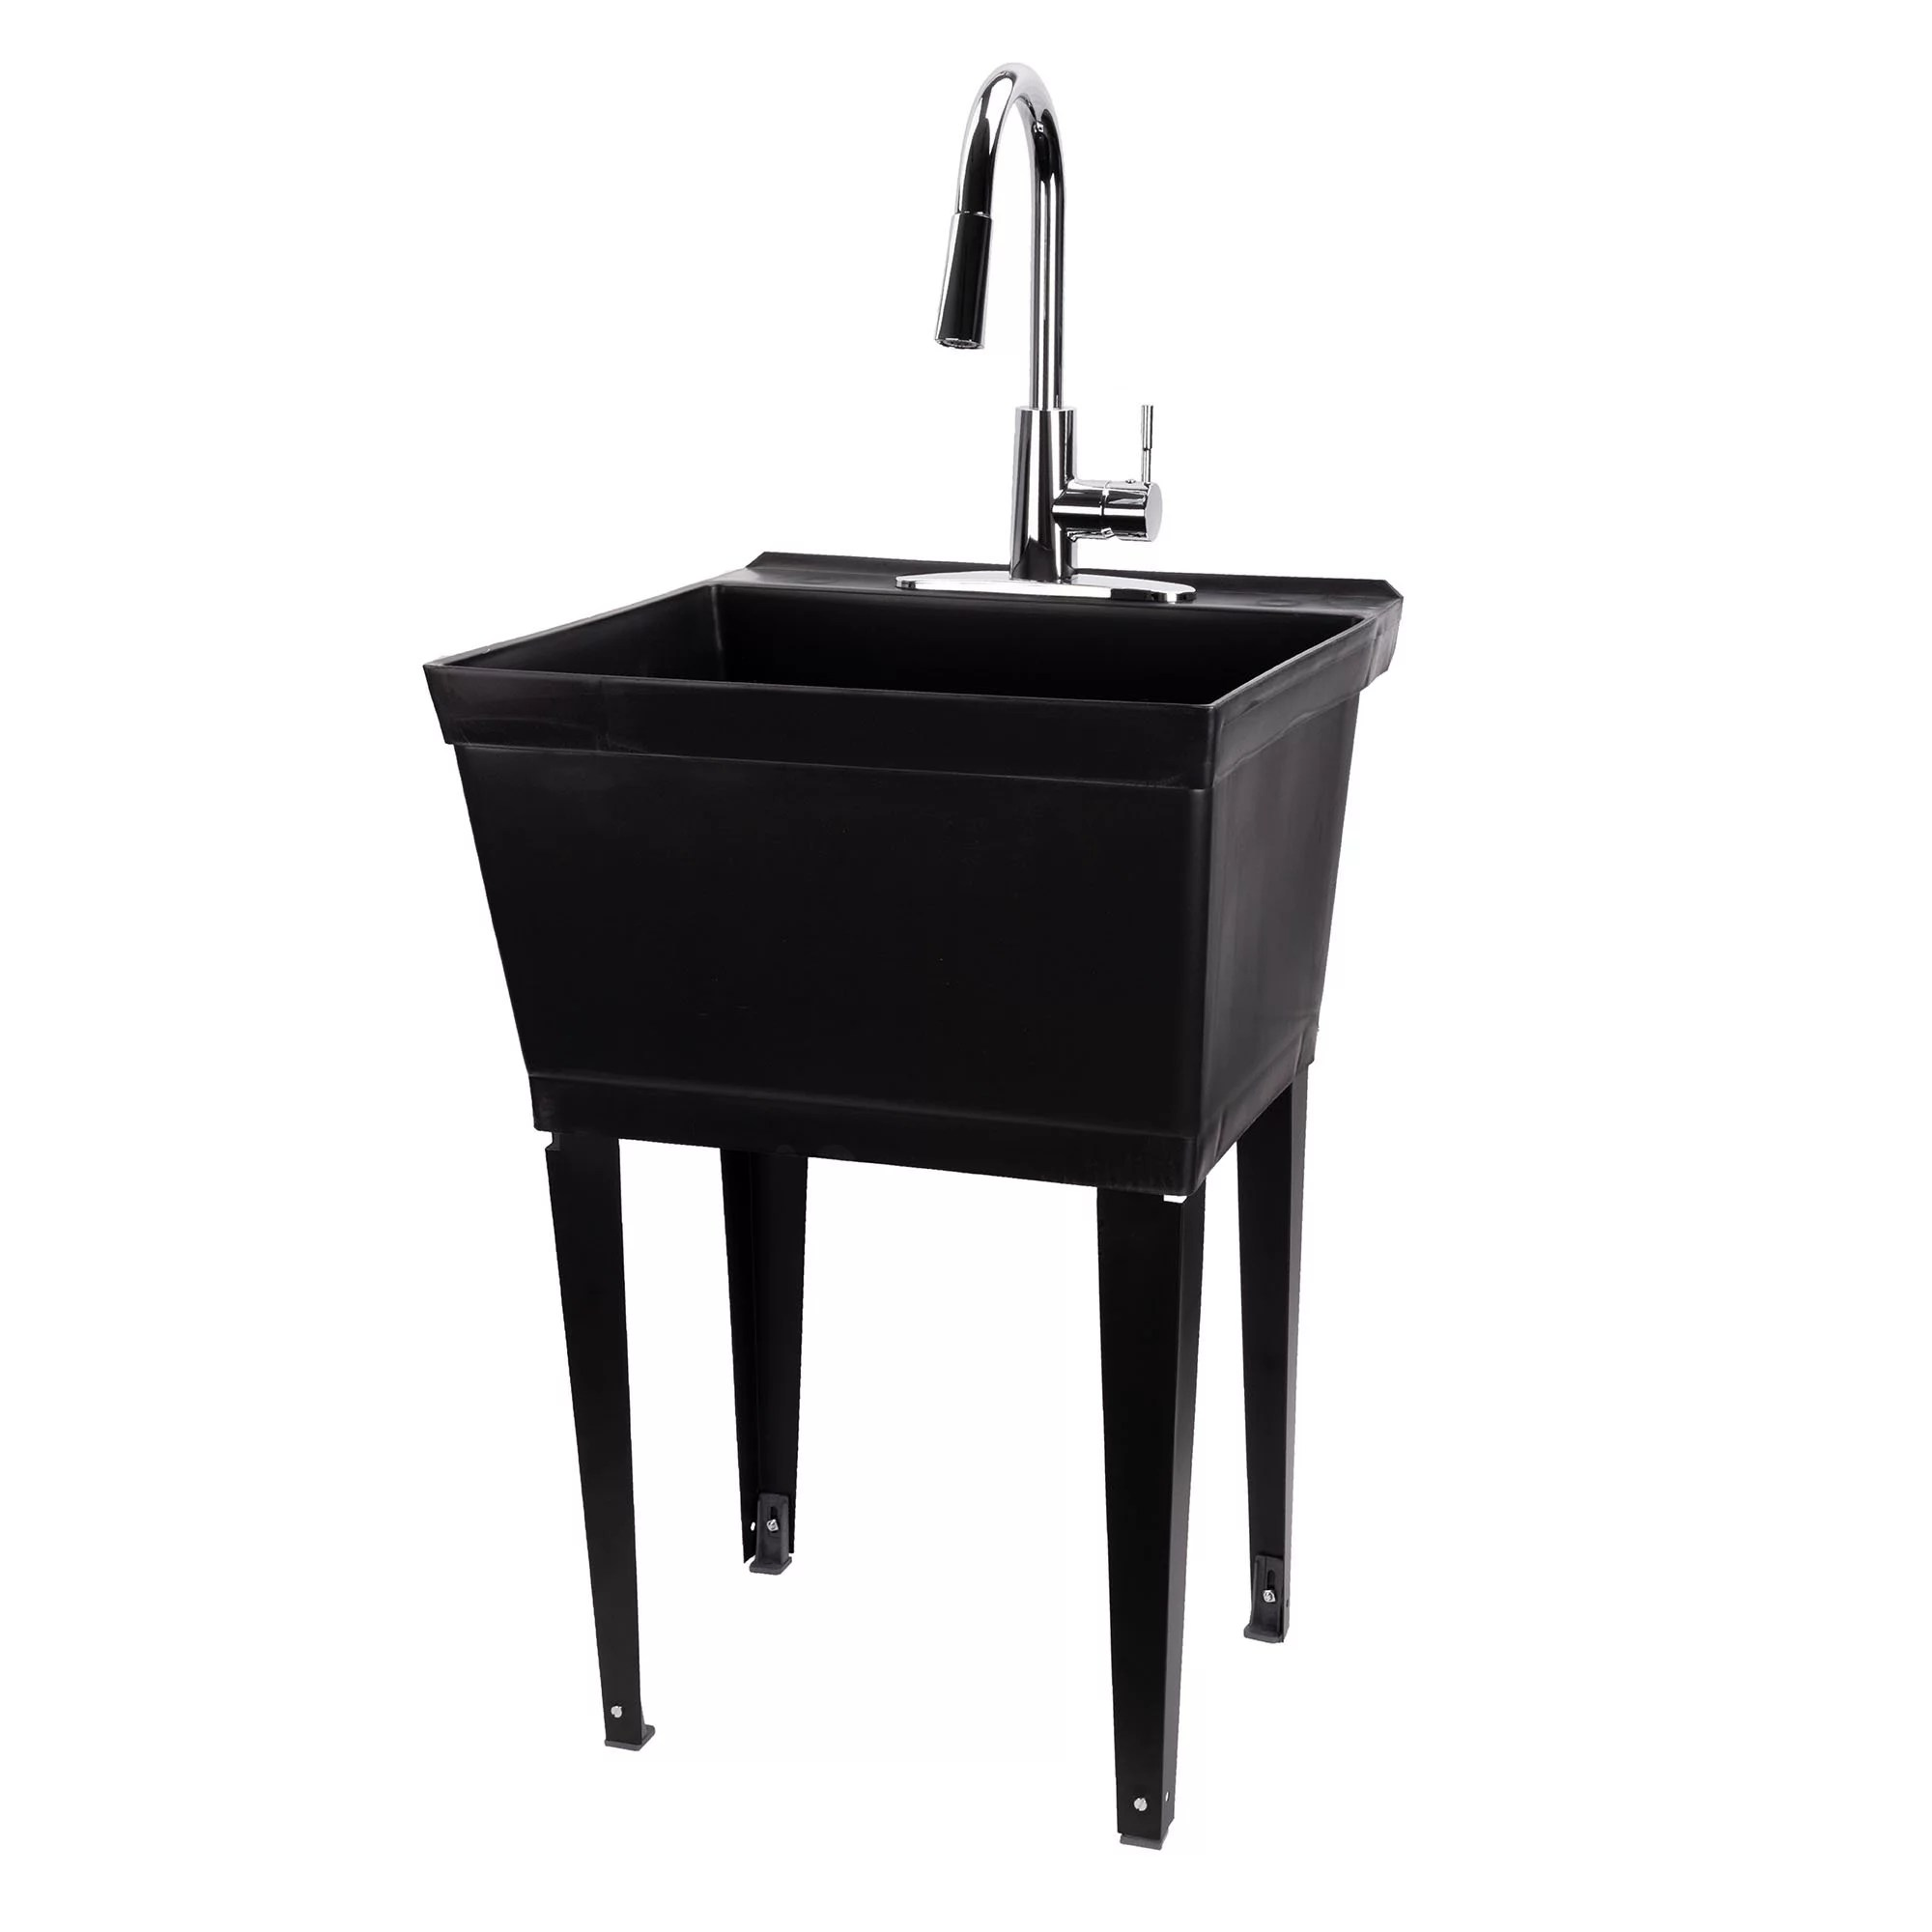 19 gallon black utility sink with high arc pull down chrome kitchen faucet 6503blkcp